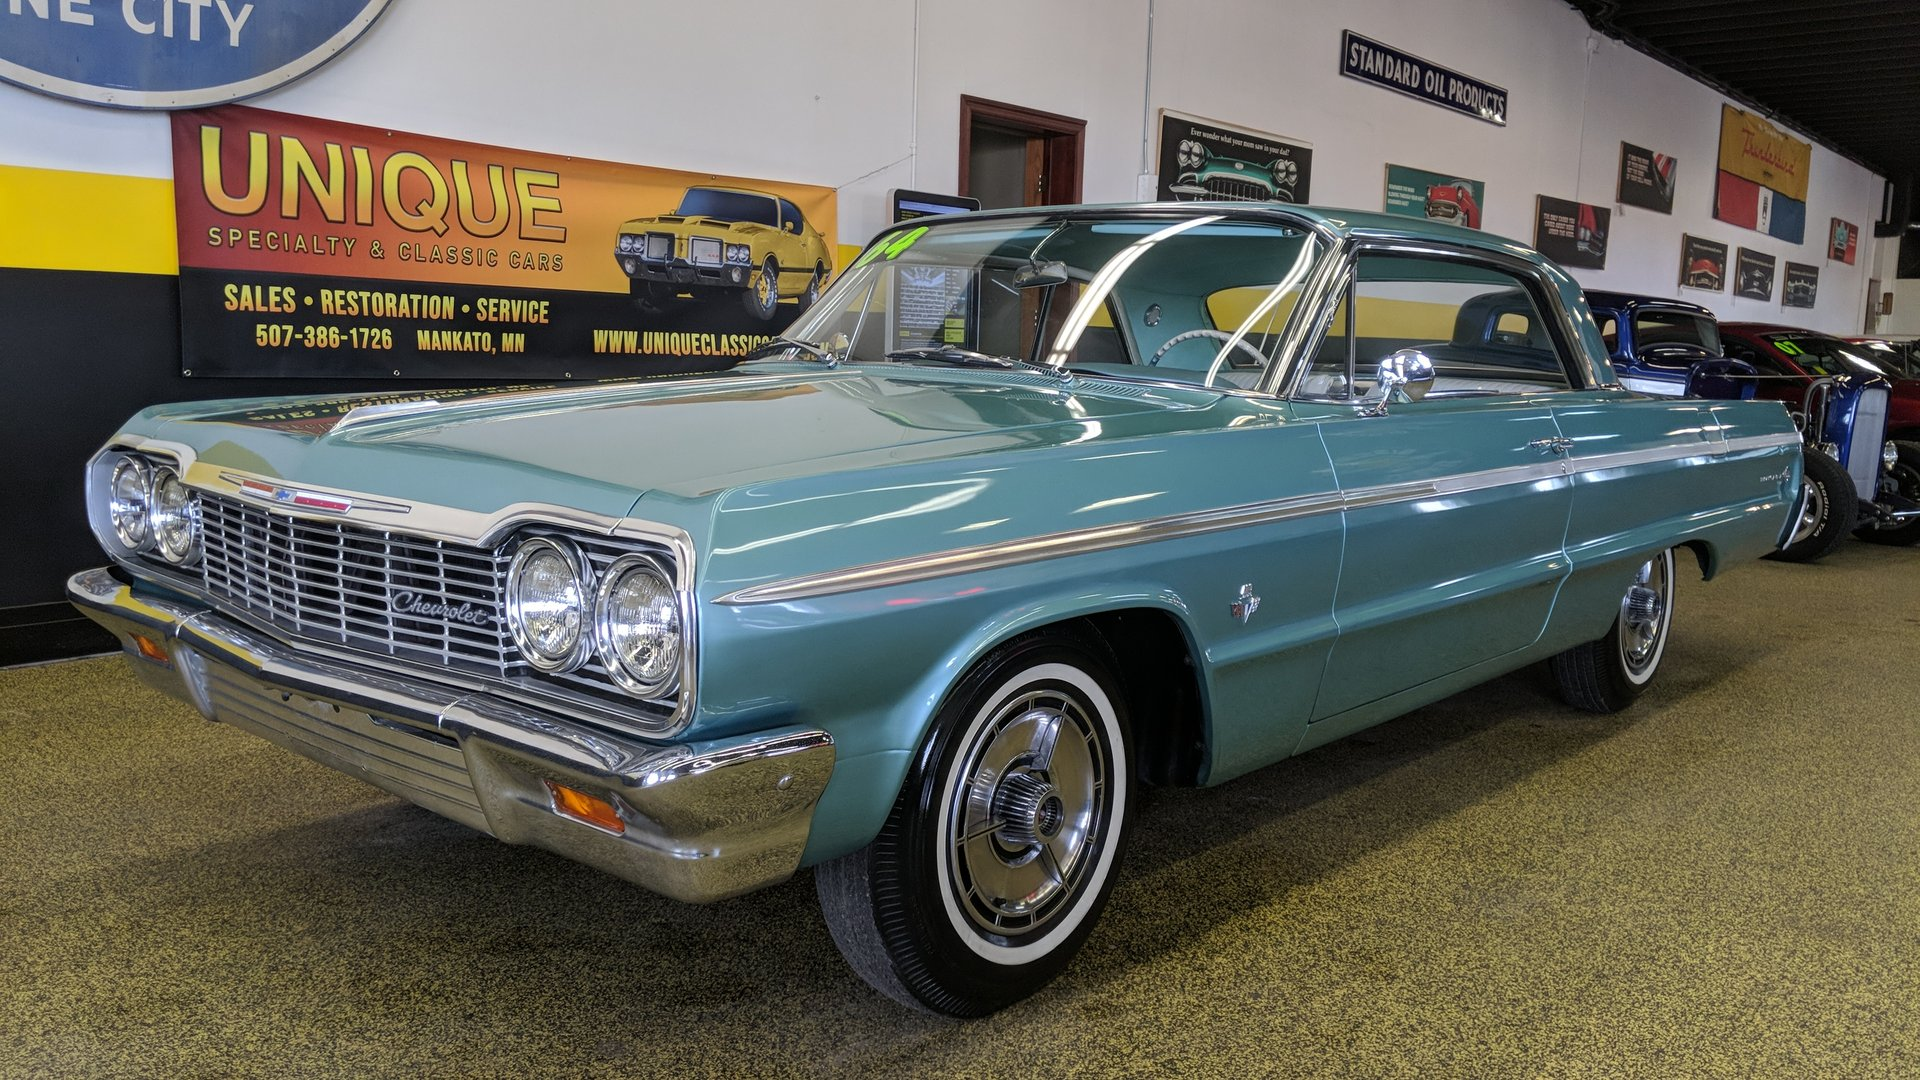 1964 Chevrolet Impala Ss 409 For Sale 66035 Motorious